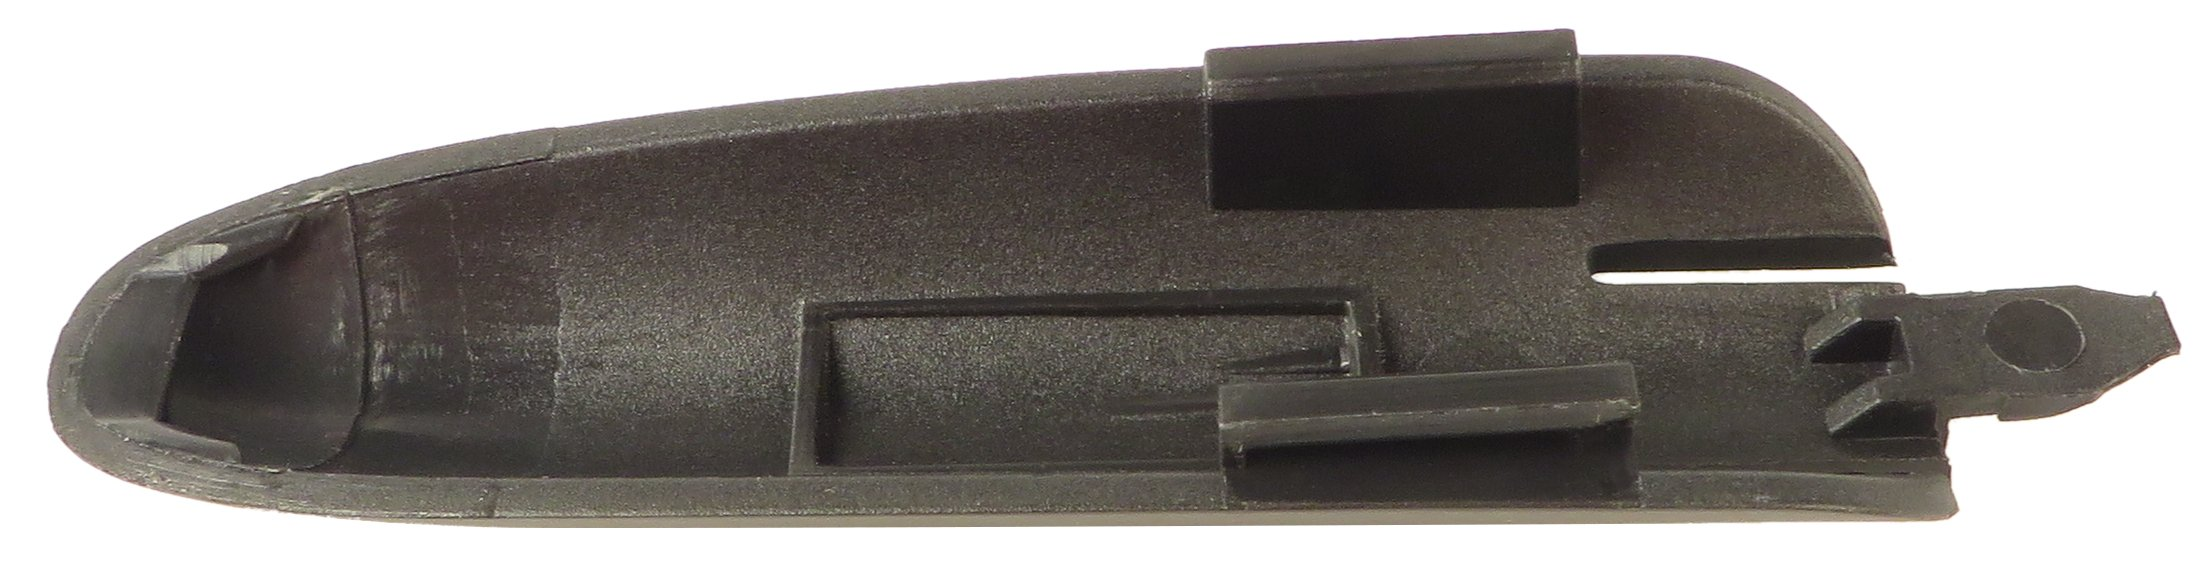 Battery Cover for HT 450/D5